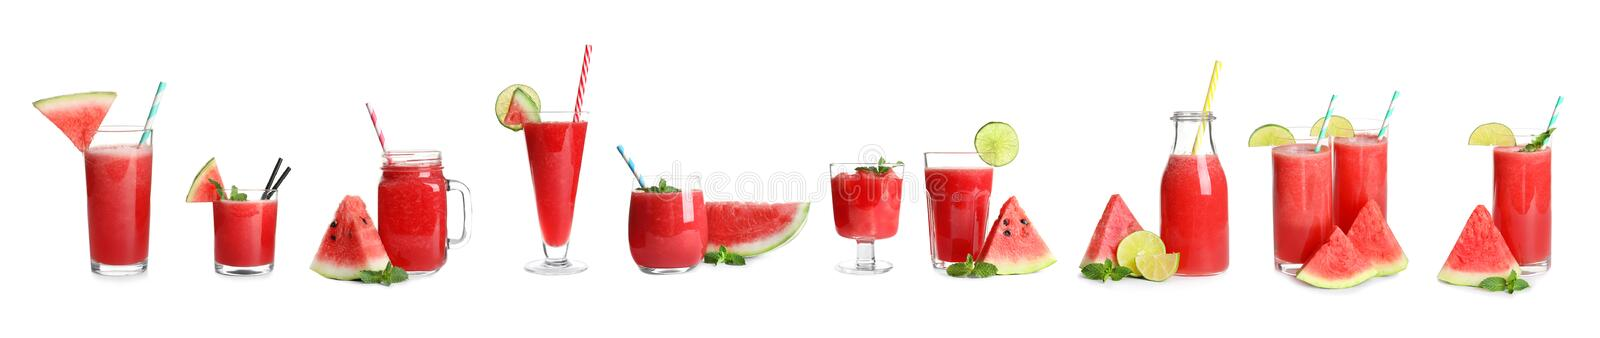 Set of yummy watermelon cocktails in different glassware stock photos